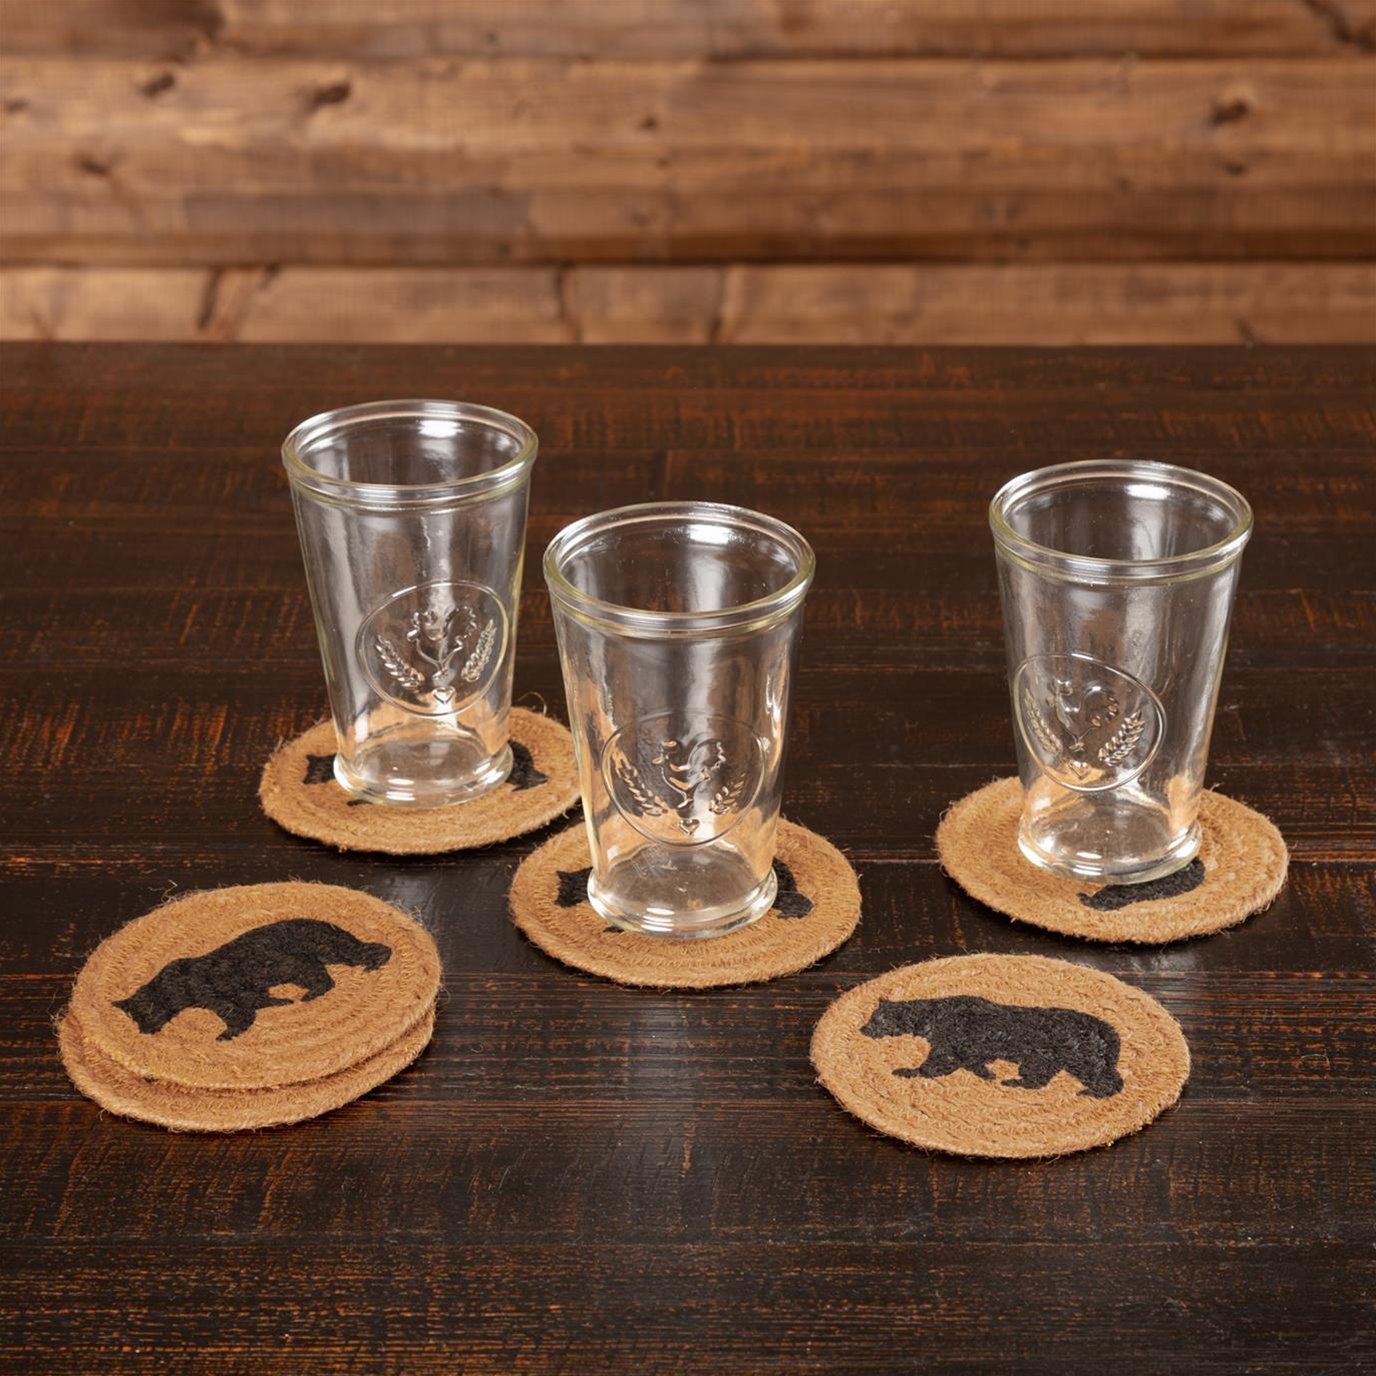 Wyatt Stenciled Bear Jute Coaster Set of 6